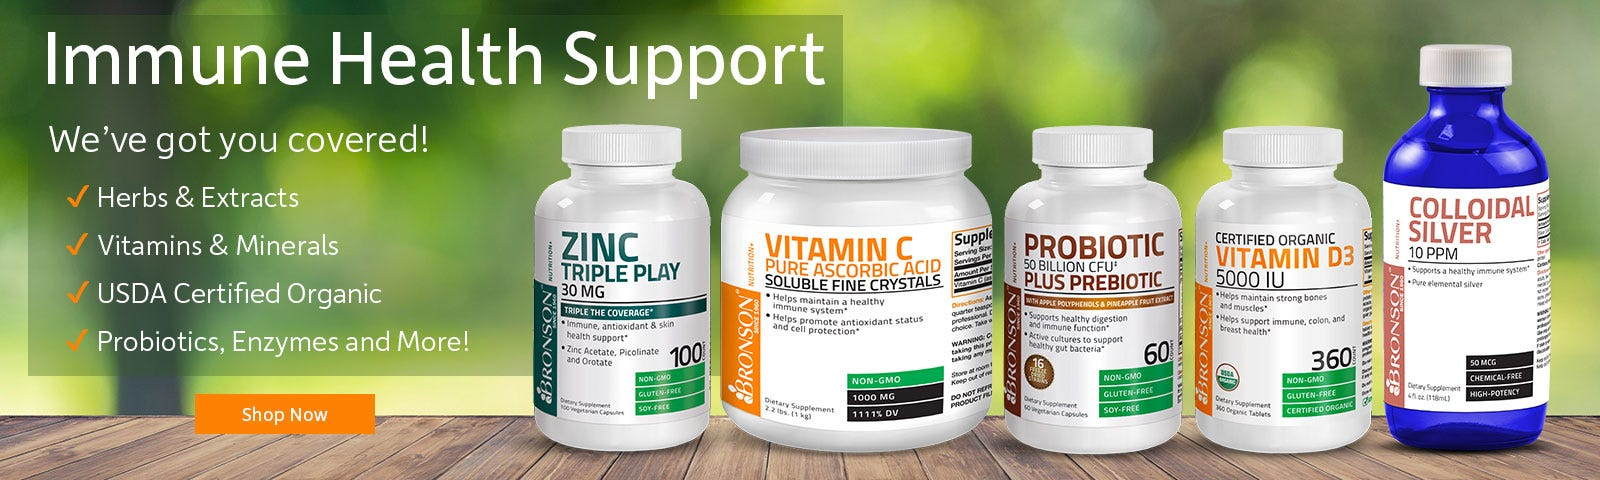 Immune Health Products - Herbs, Vitamins, Organic, Probiotics and More - Shop Now